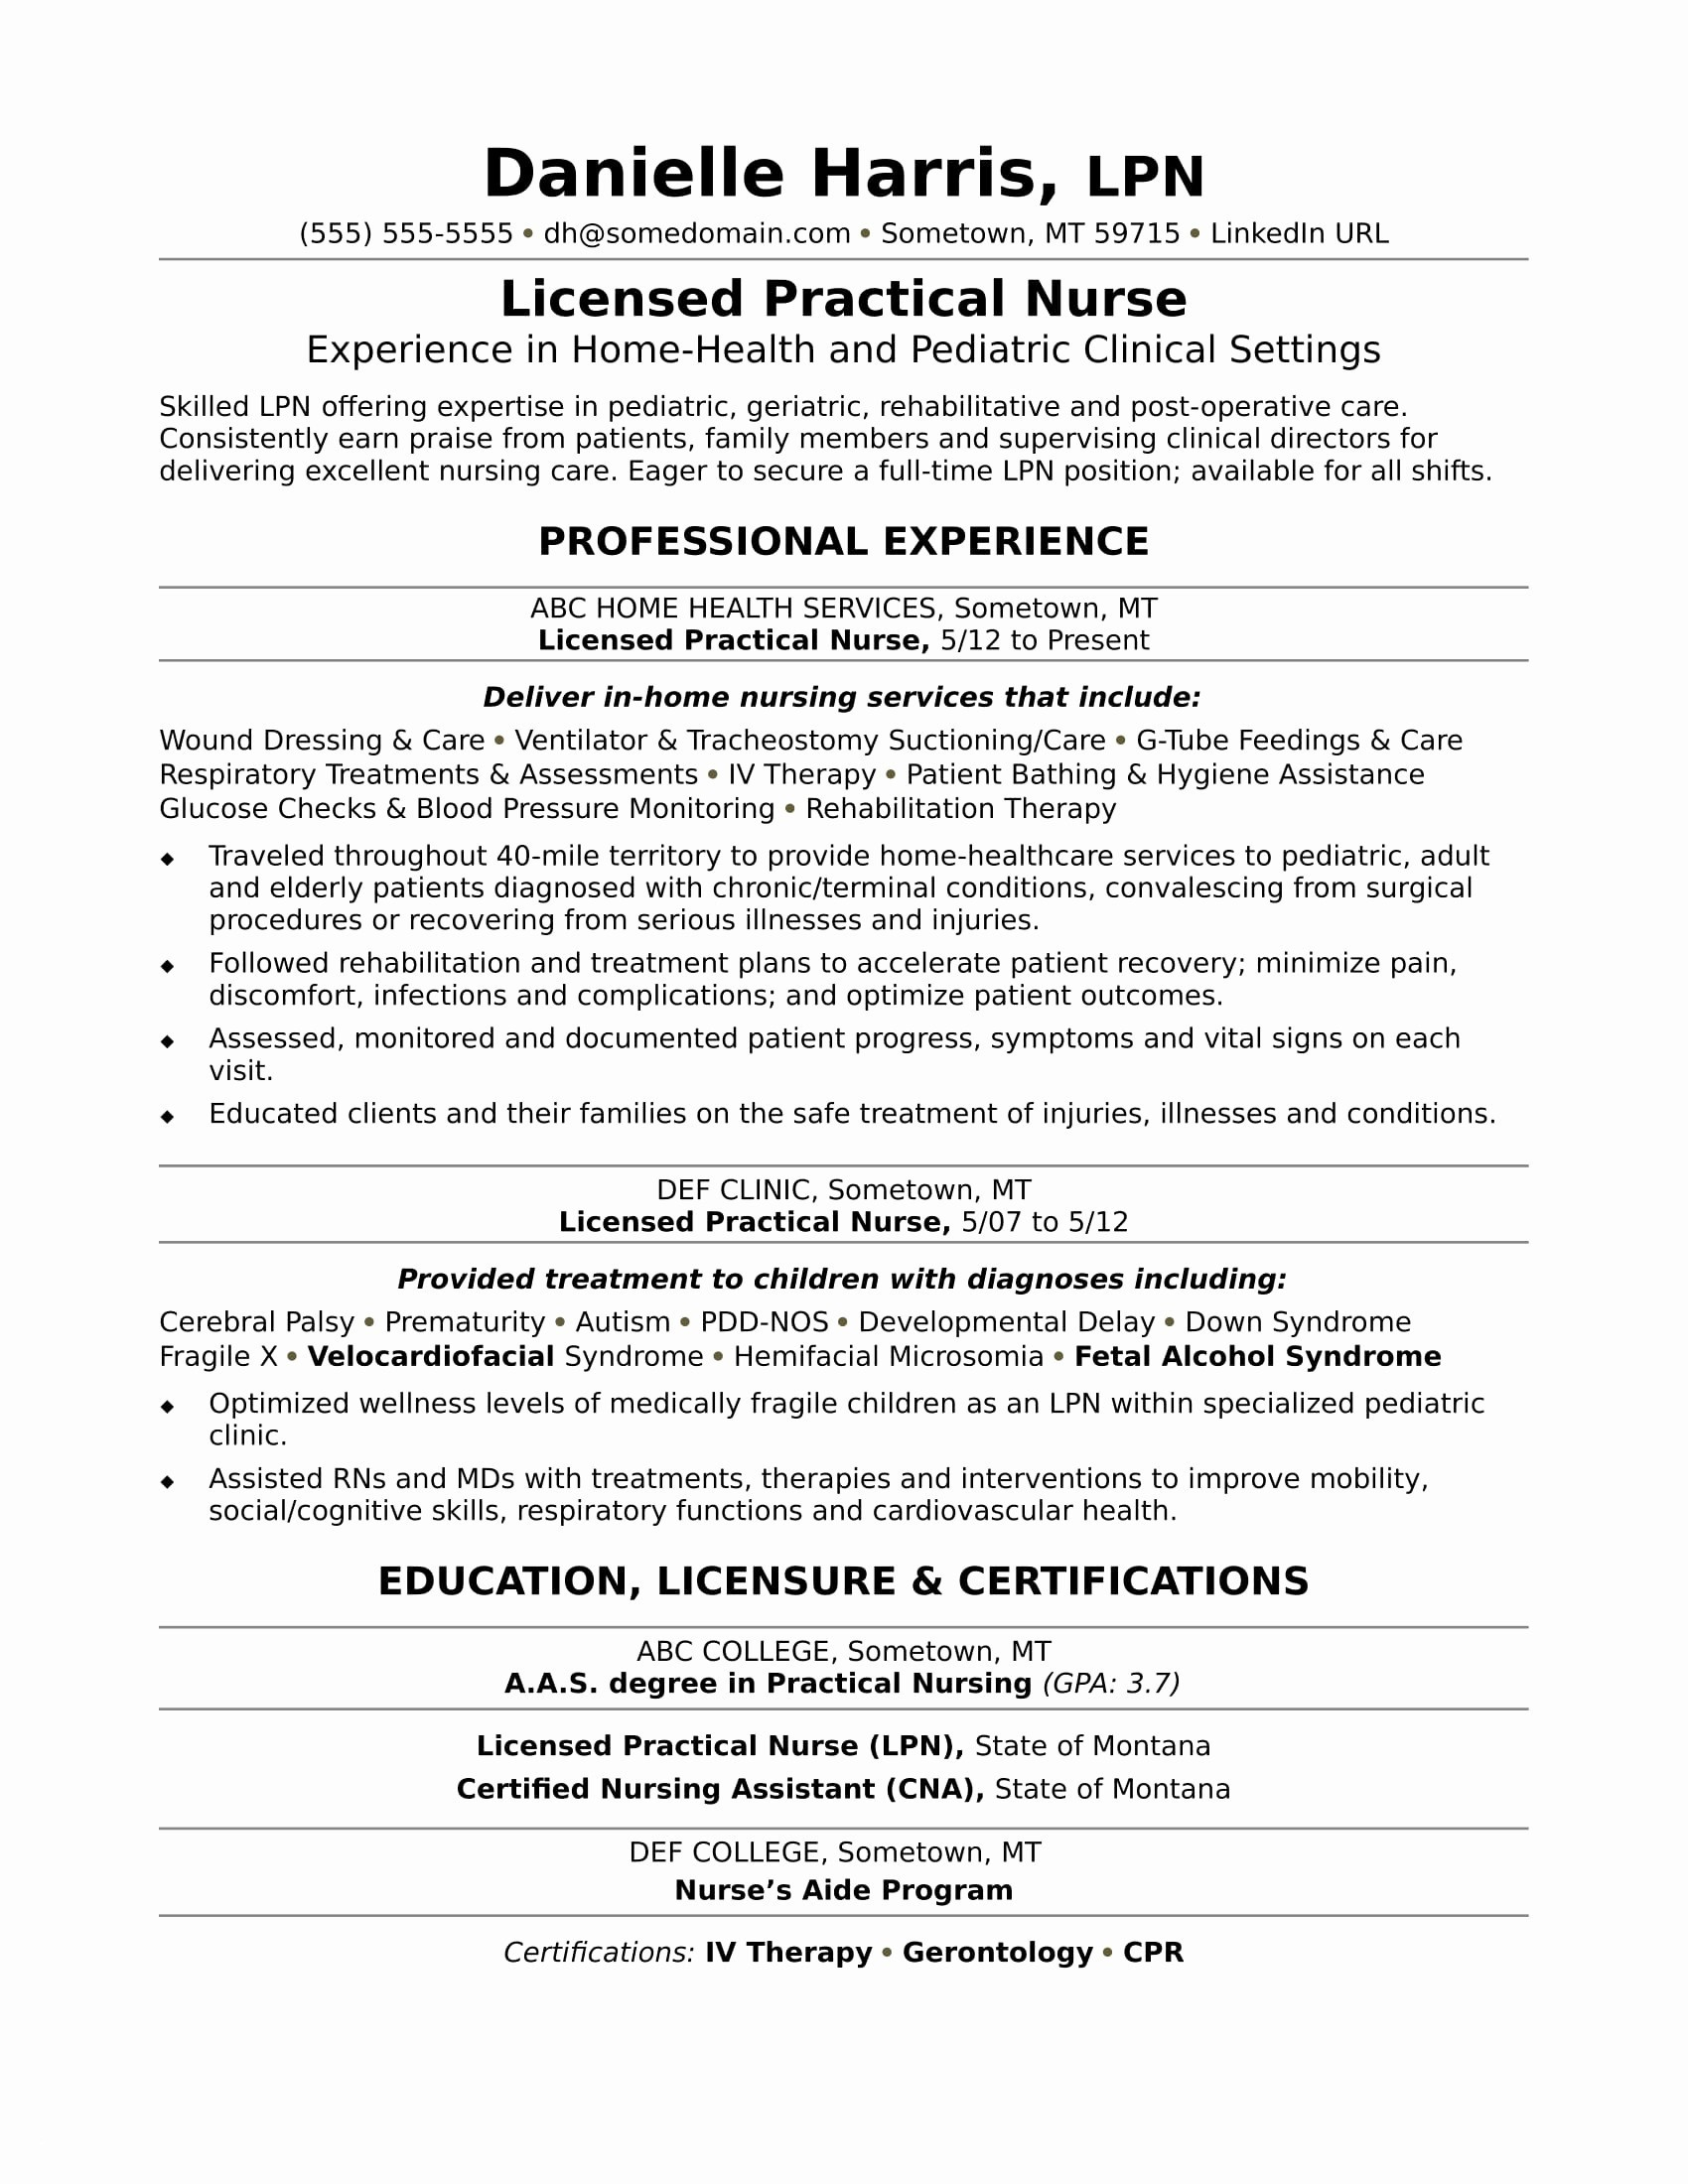 certified nursing assistant resume Collection-Certified Nursing assistant Resume Unique Resume for Nurse Luxury New Nurse Resume Awesome Nurse Resume 0d 7-j